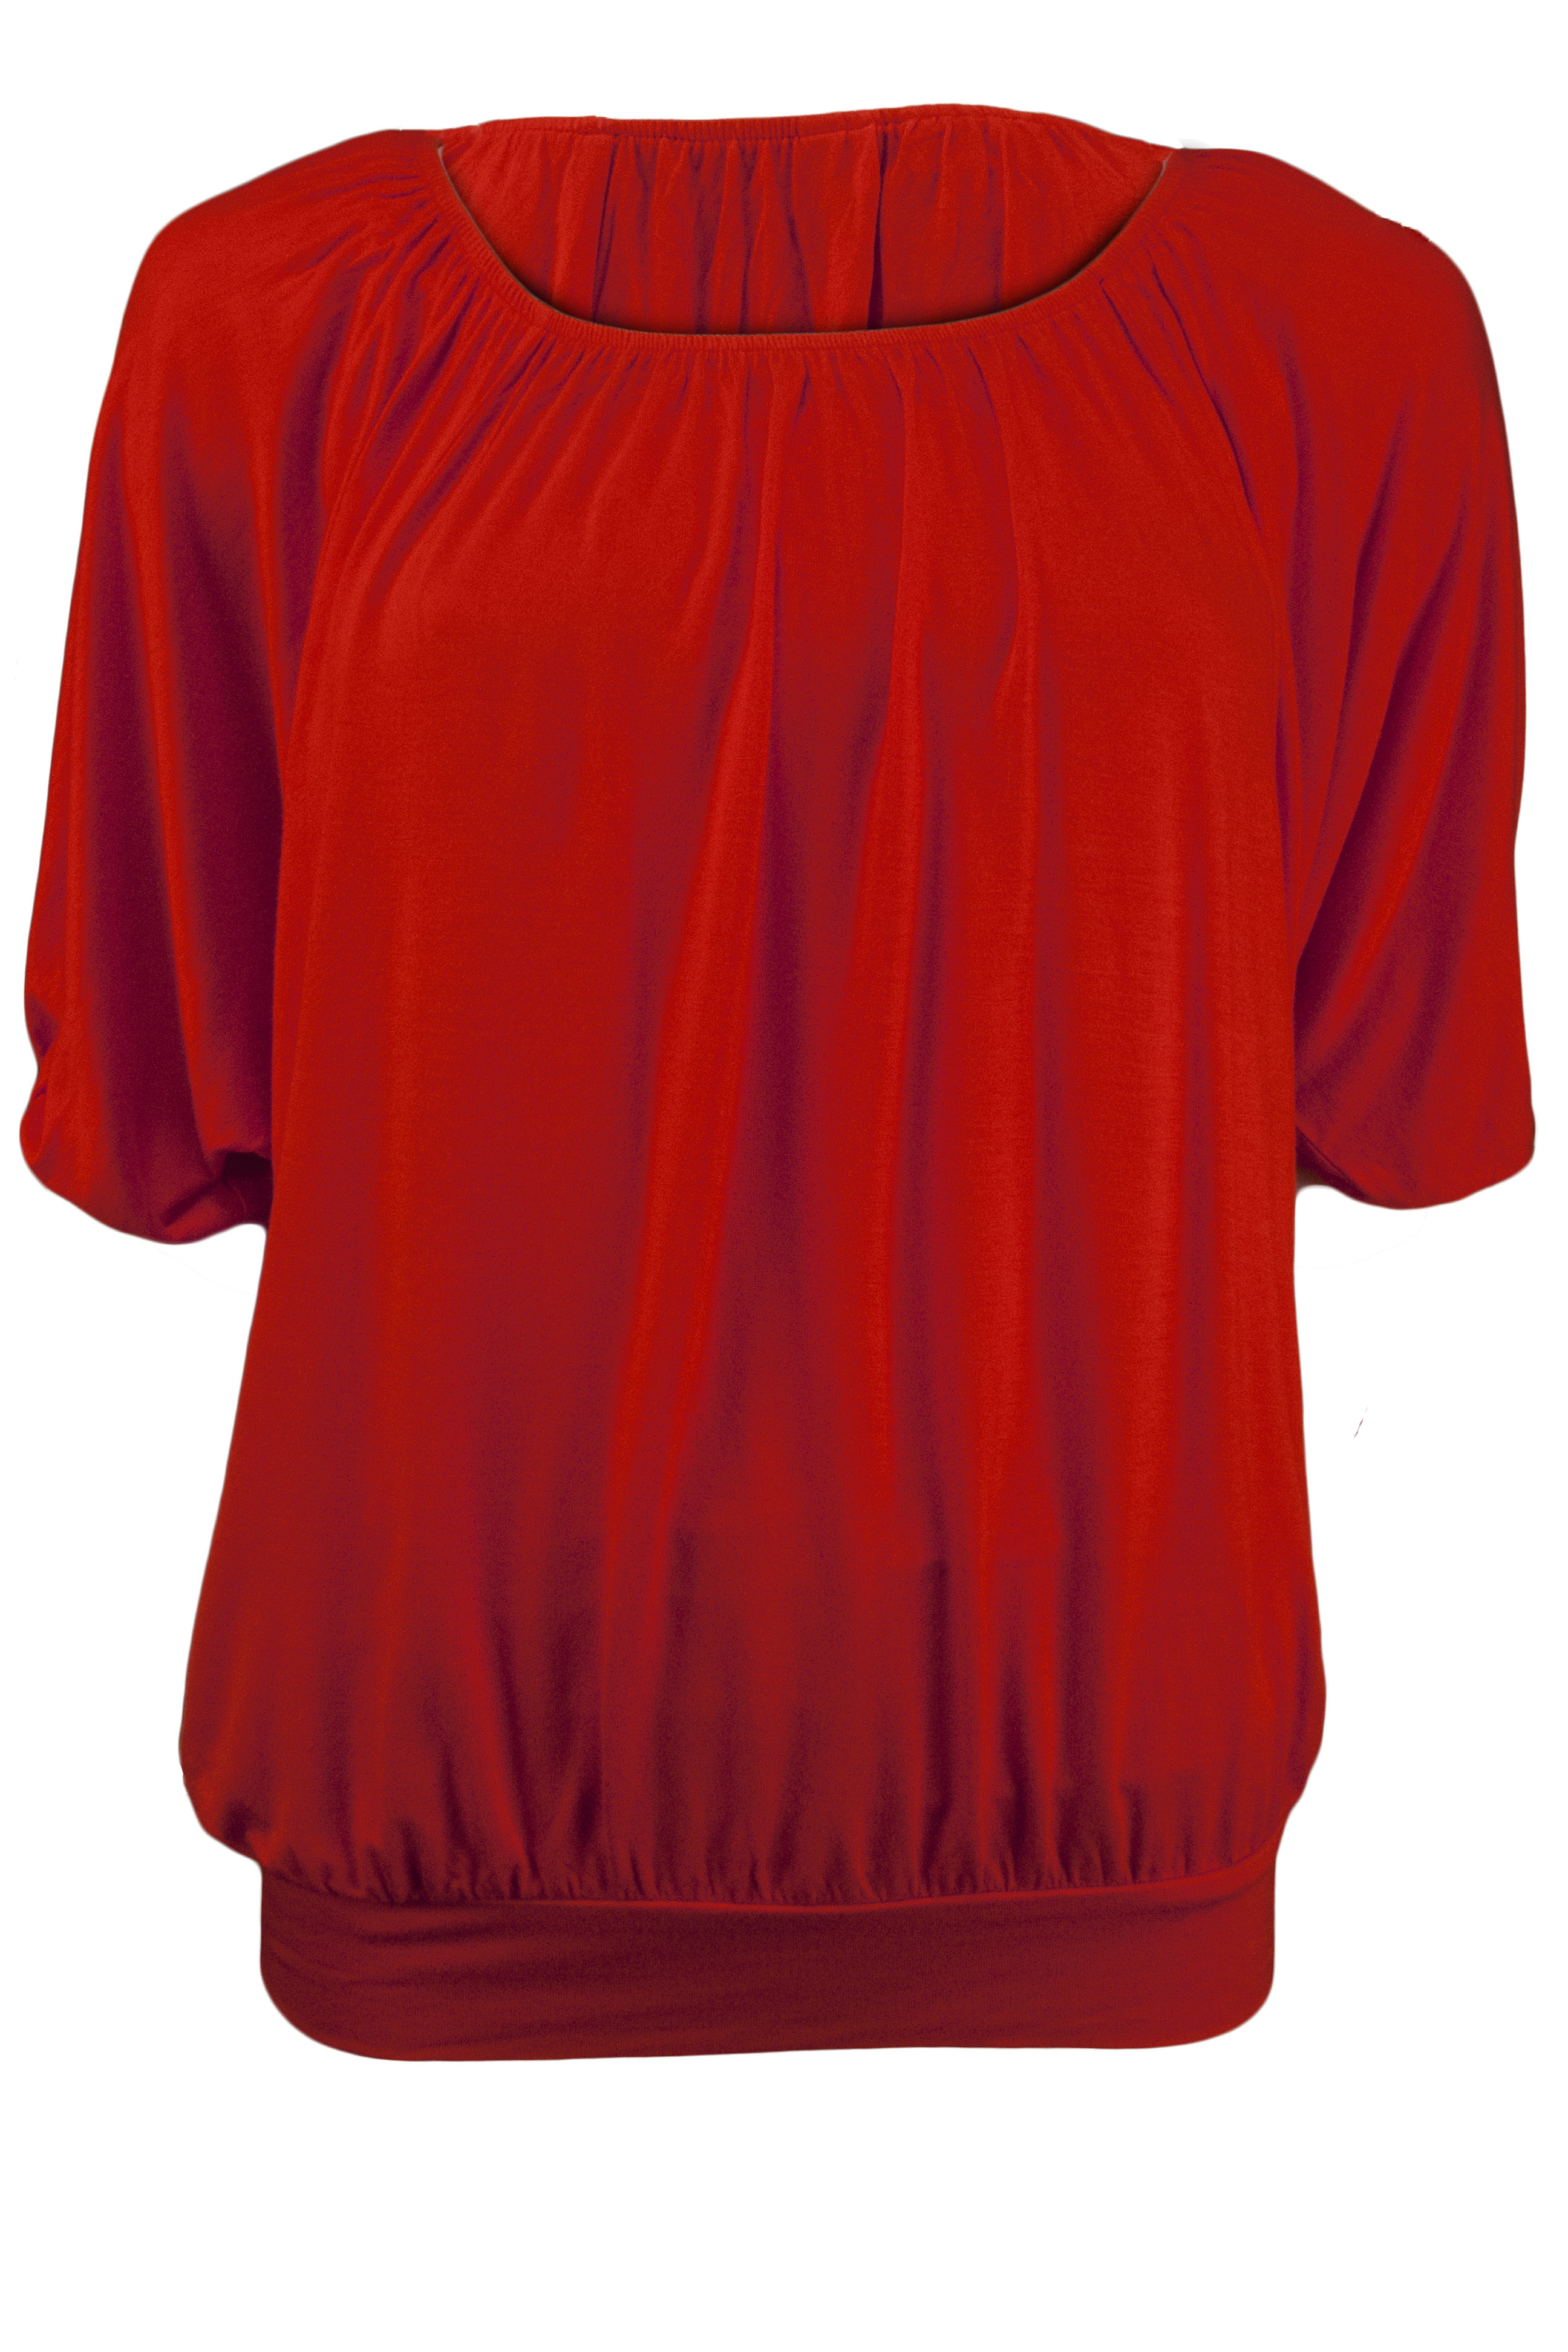 This women's plus-size dolman banded bottom top is perfect for any occasion. This women's plus-size dolman banded bottom top provides comfort and style. Wear this to the office with a skirt and blazer or at home with jeans.